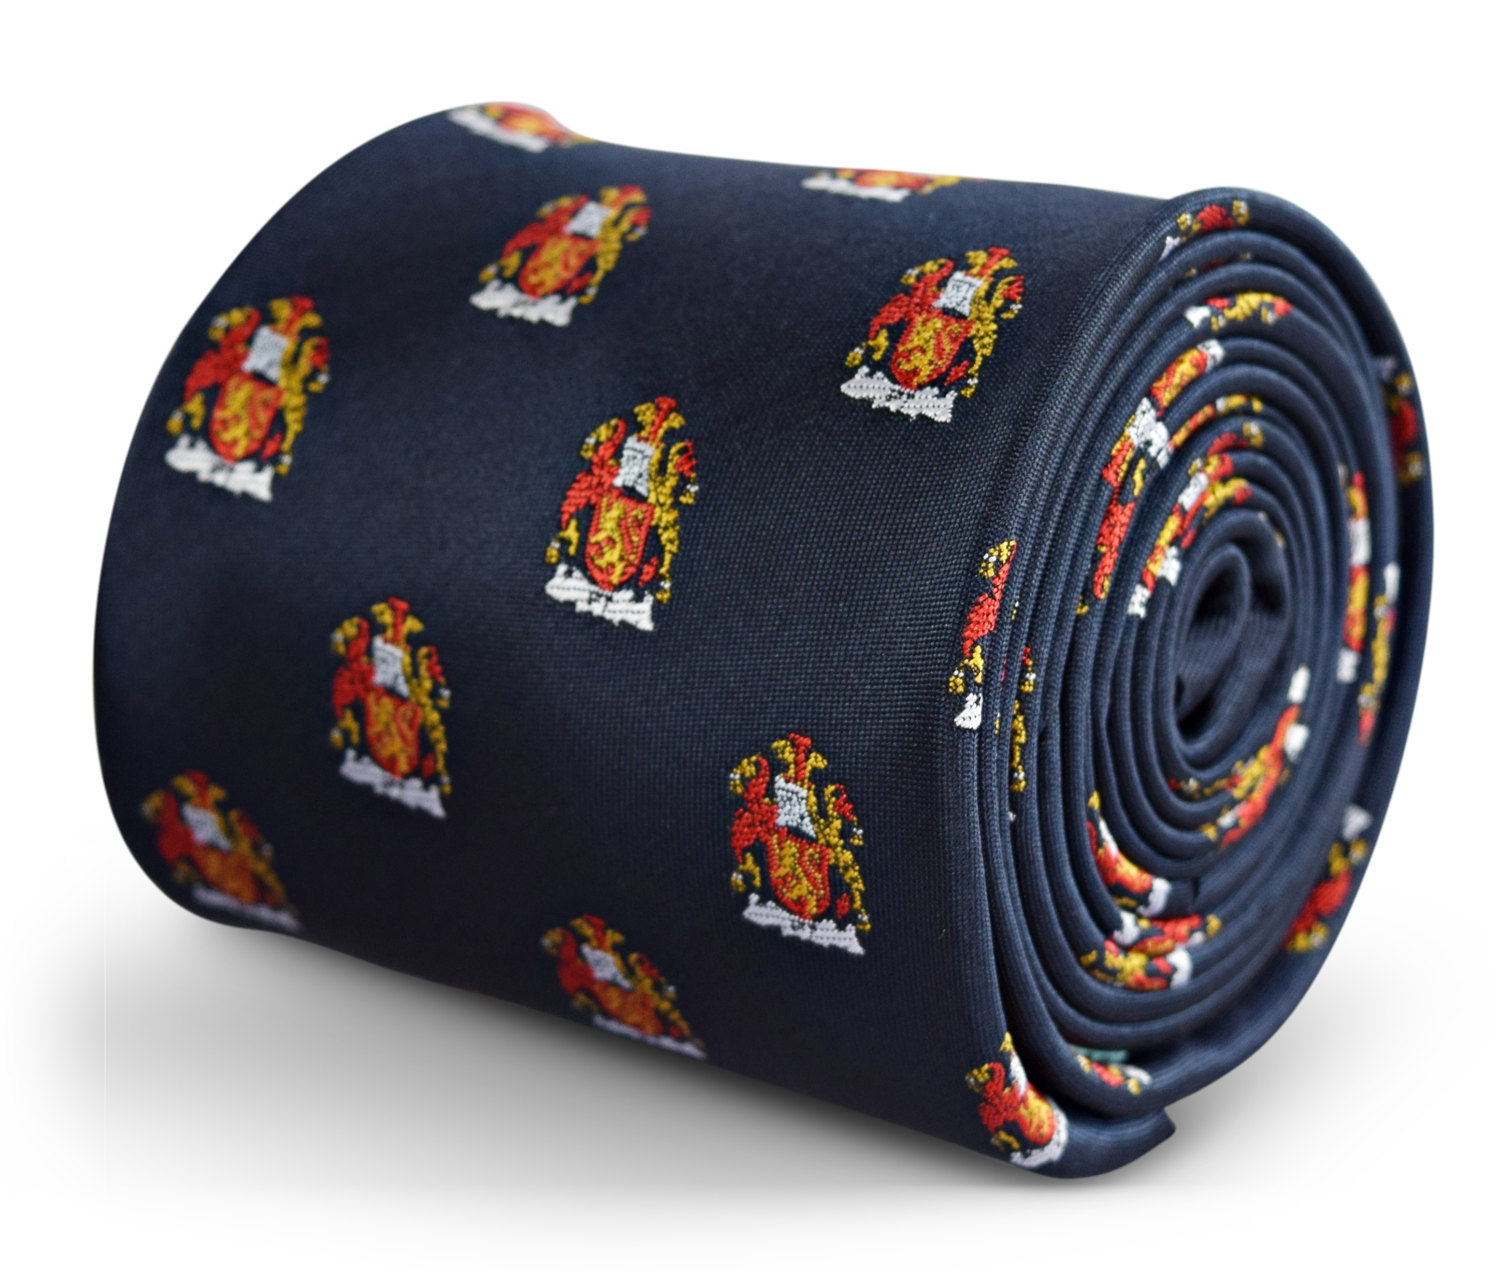 navy blue tie with coat of arms embroidered design with signature floral design